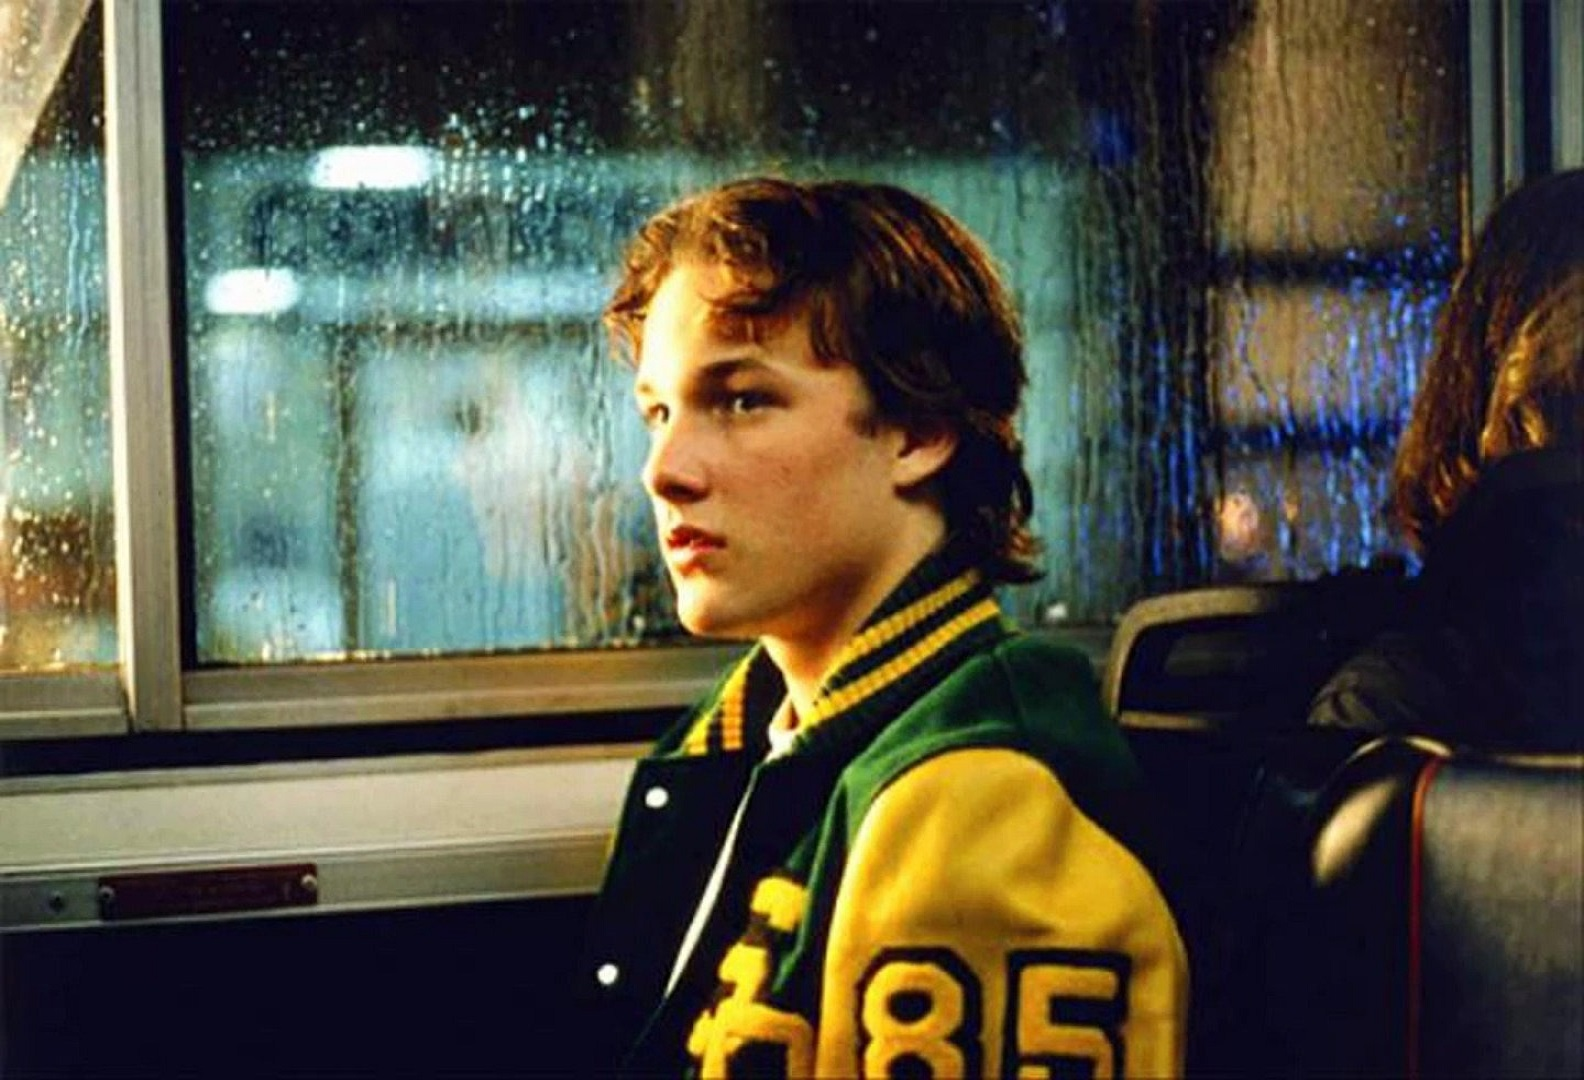 Brad Renfro in Apt Pupil (1998)